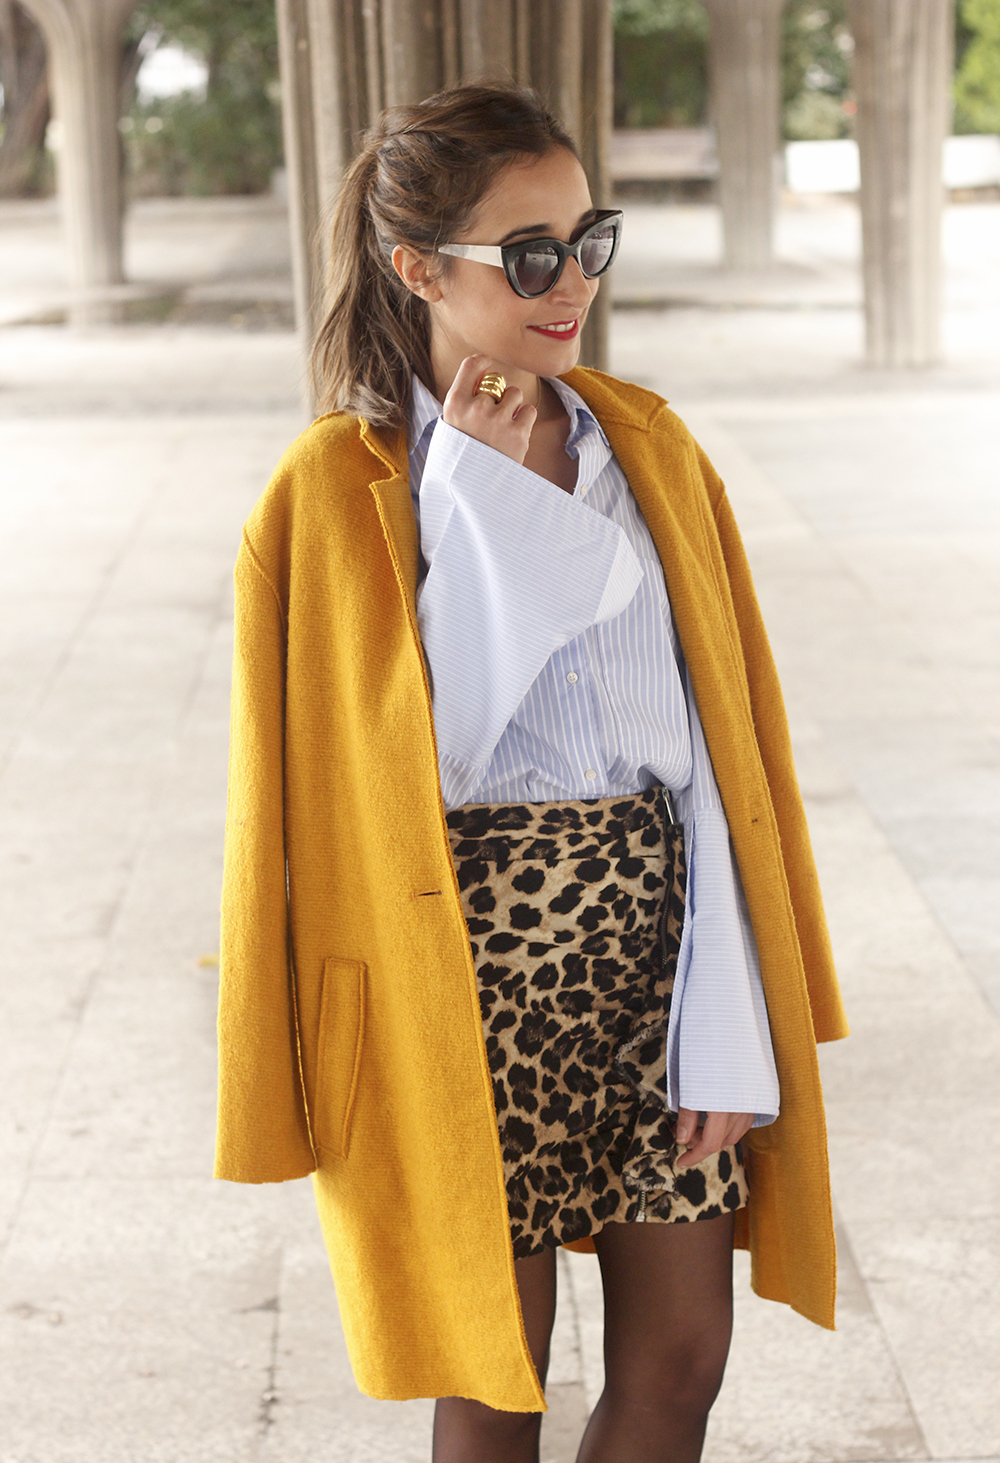 Leopard Skirt striped shirt black heels mustard coat fall outfit style fashion15